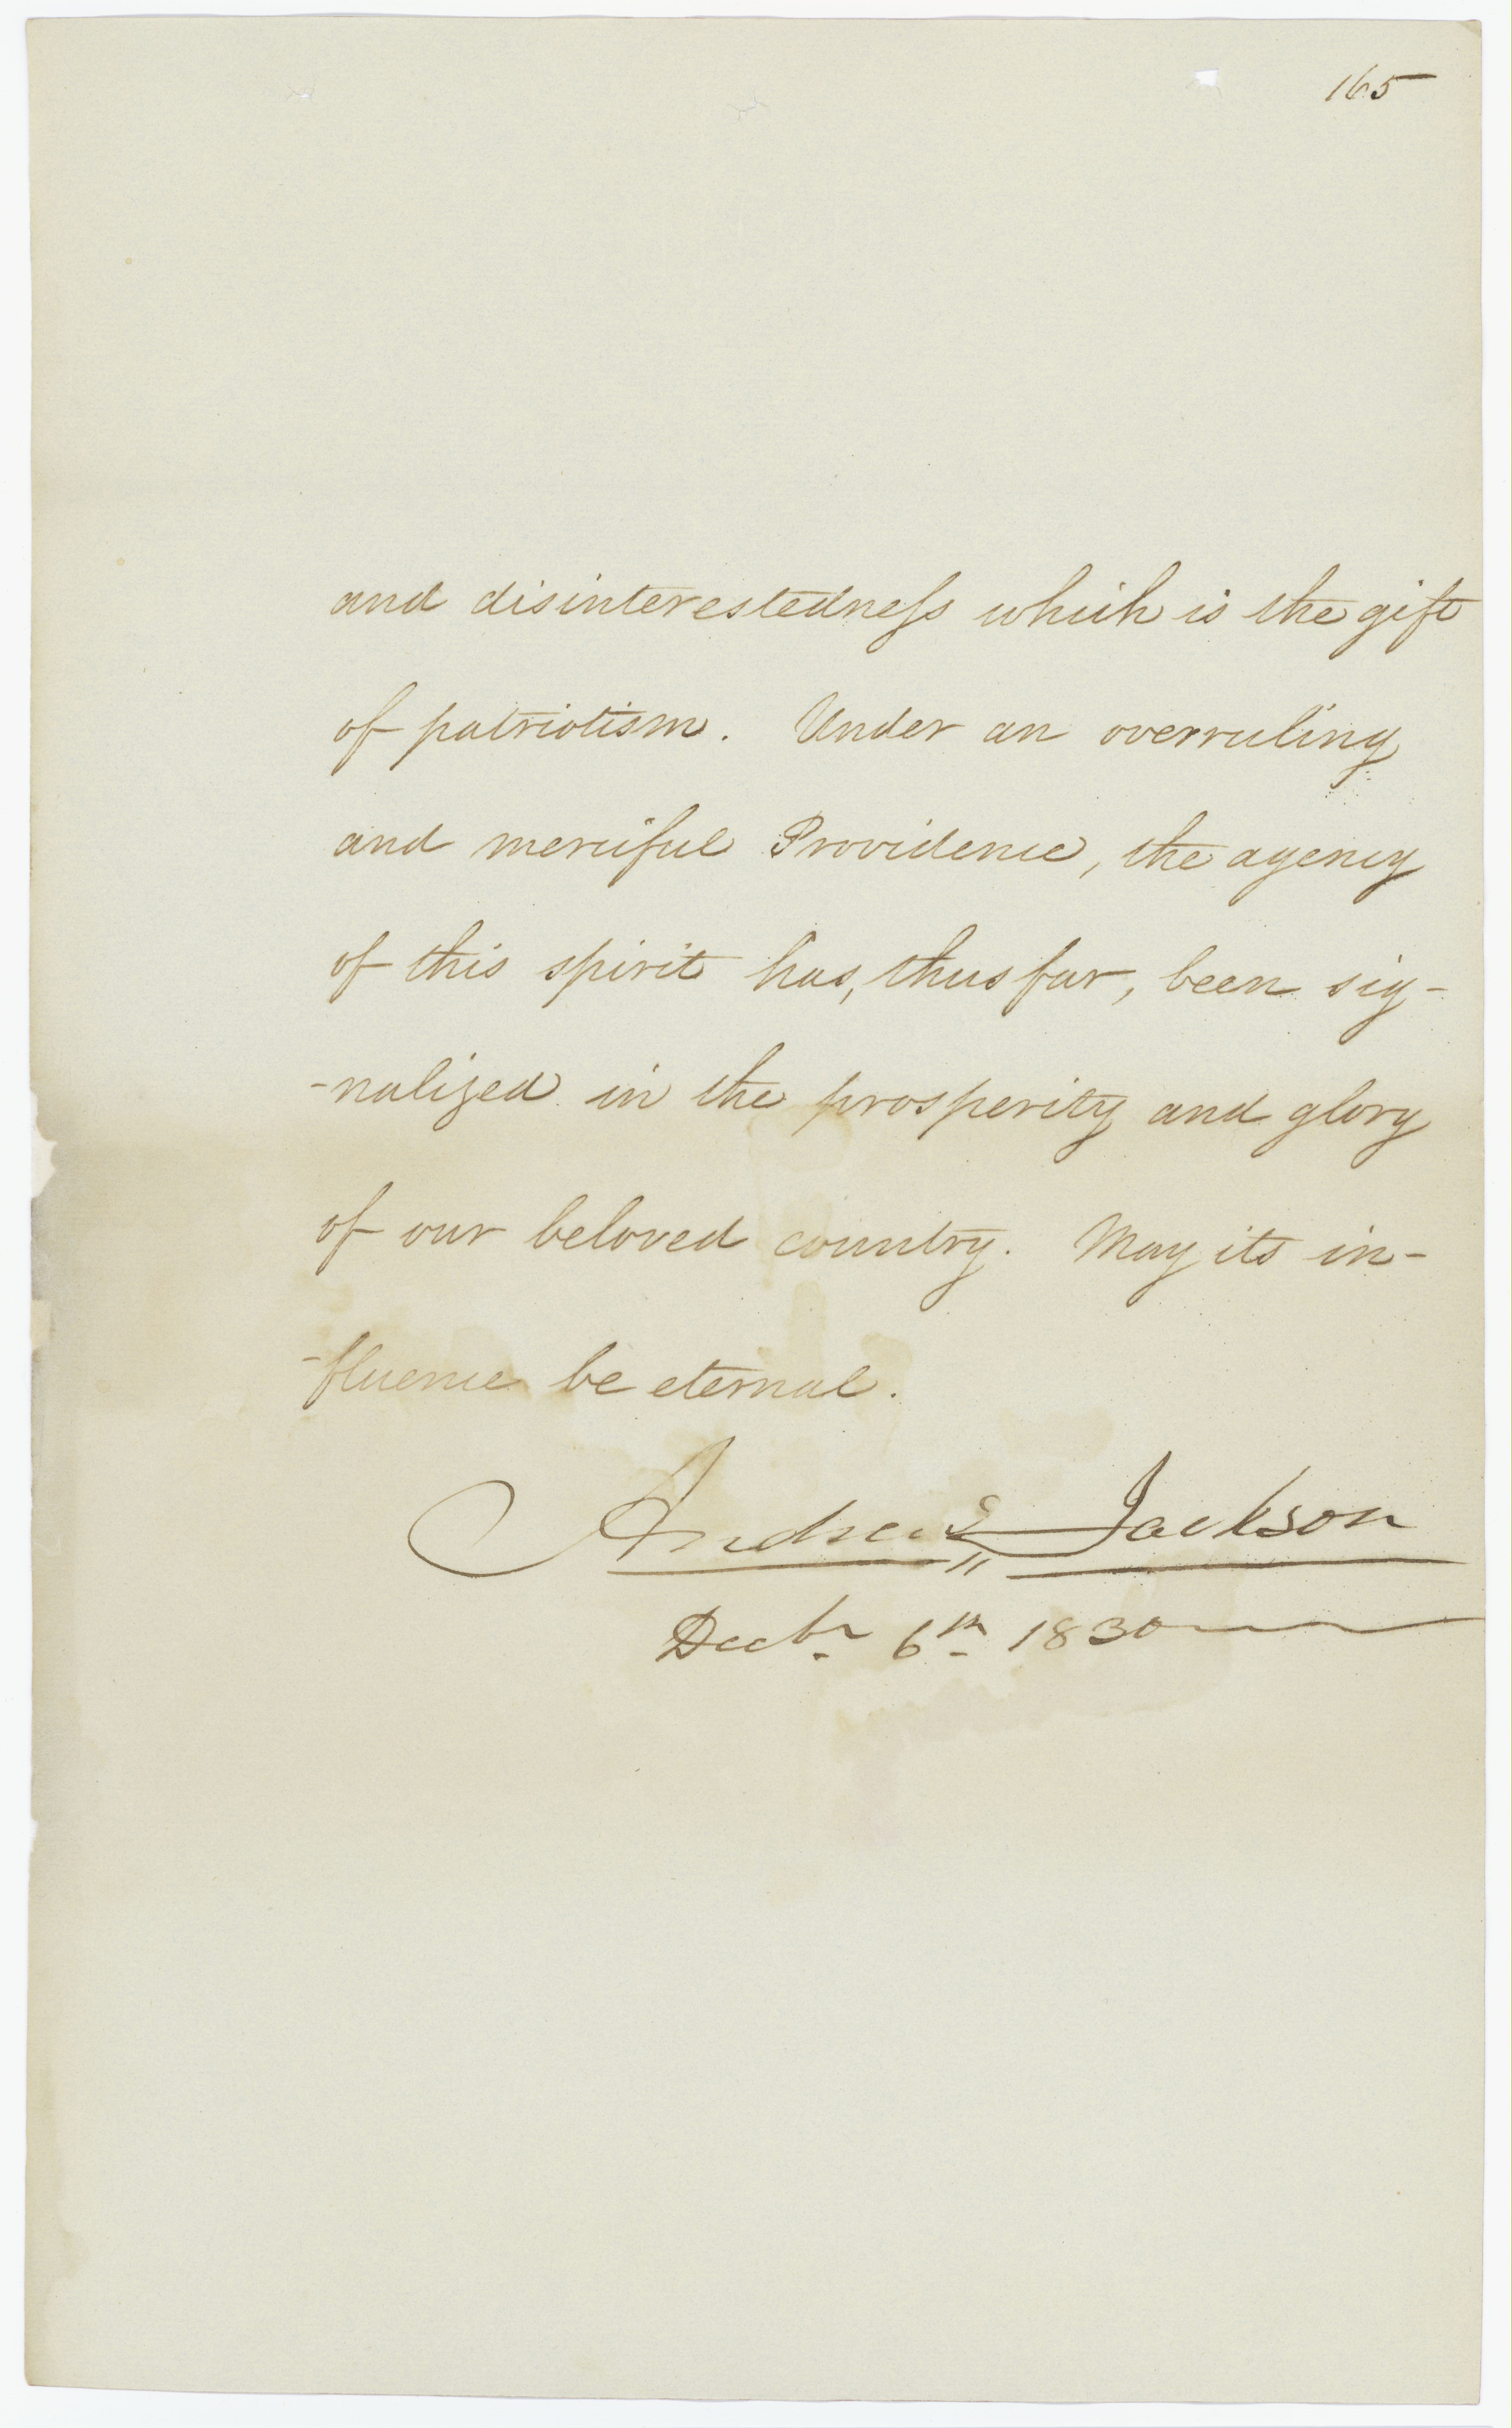 """President Andrew Jackson's Annual Message to Congress """"On Indian Removal,"""" December 6, 1830. (National Archives Identifier 5682743)"""